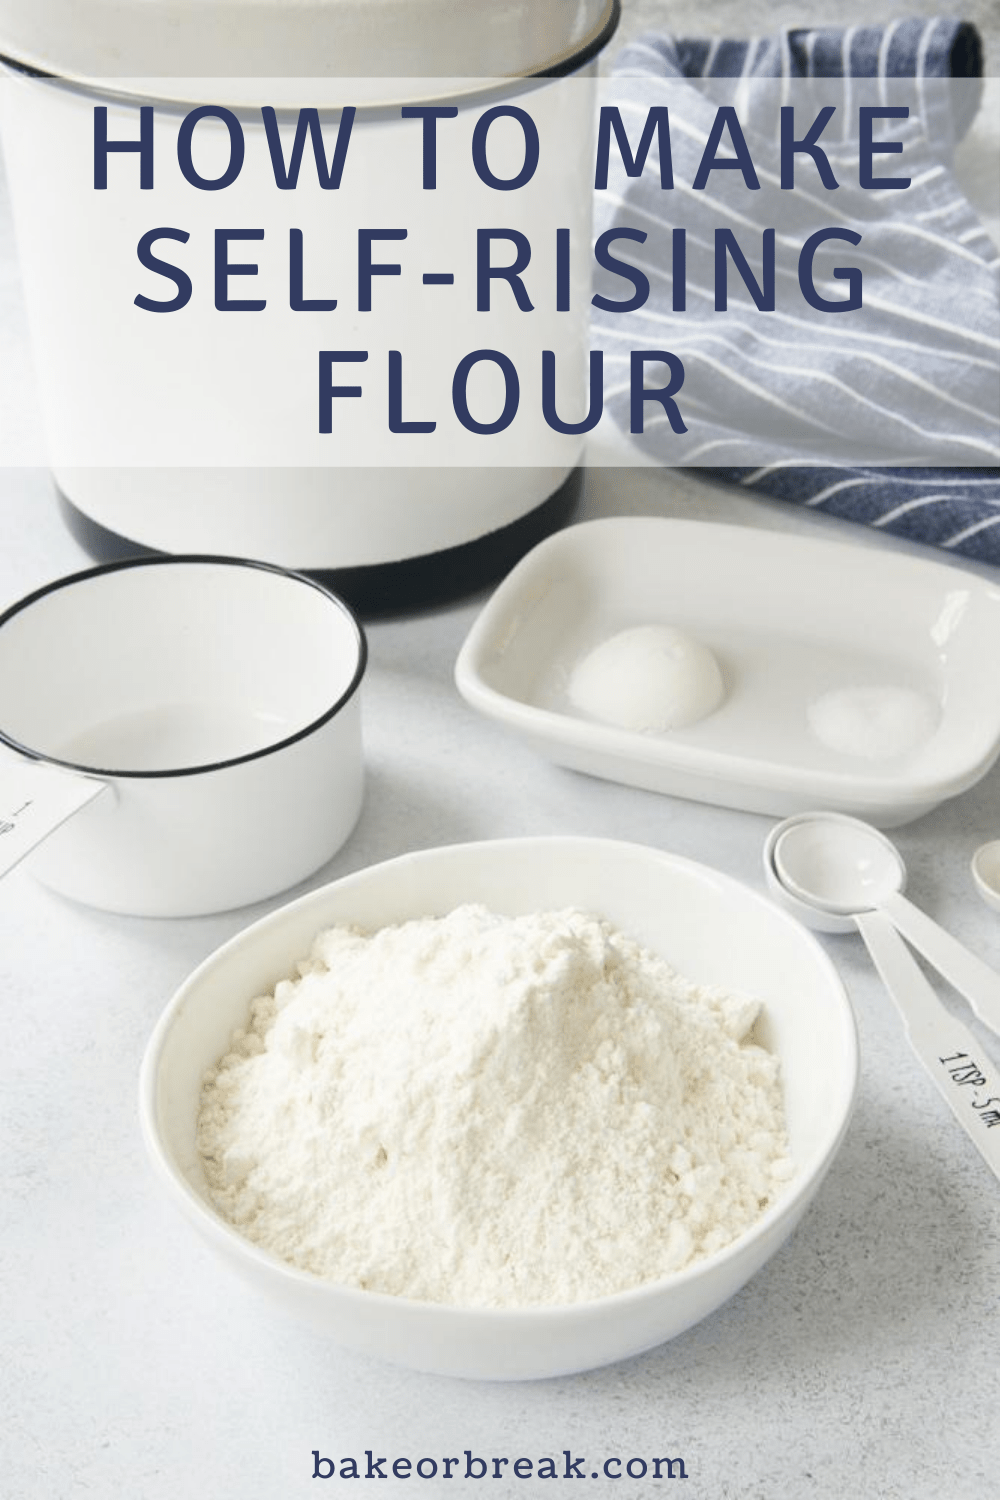 How to Make Self-Rising Flour bakeorbreak.com